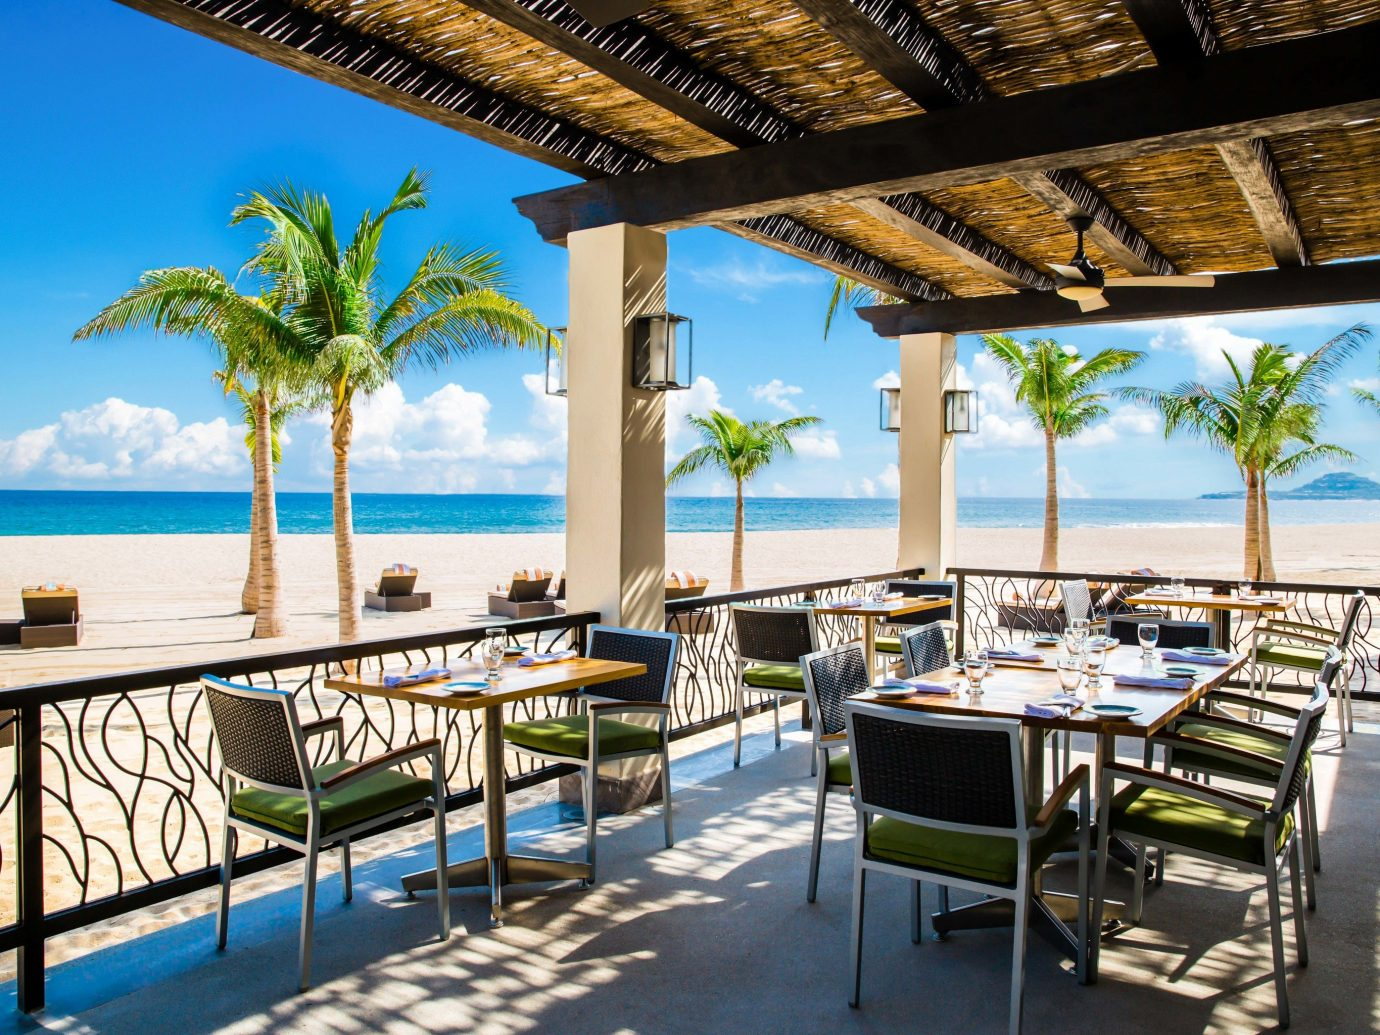 Outdoor dining at Hyatt Ziva Los Cabos